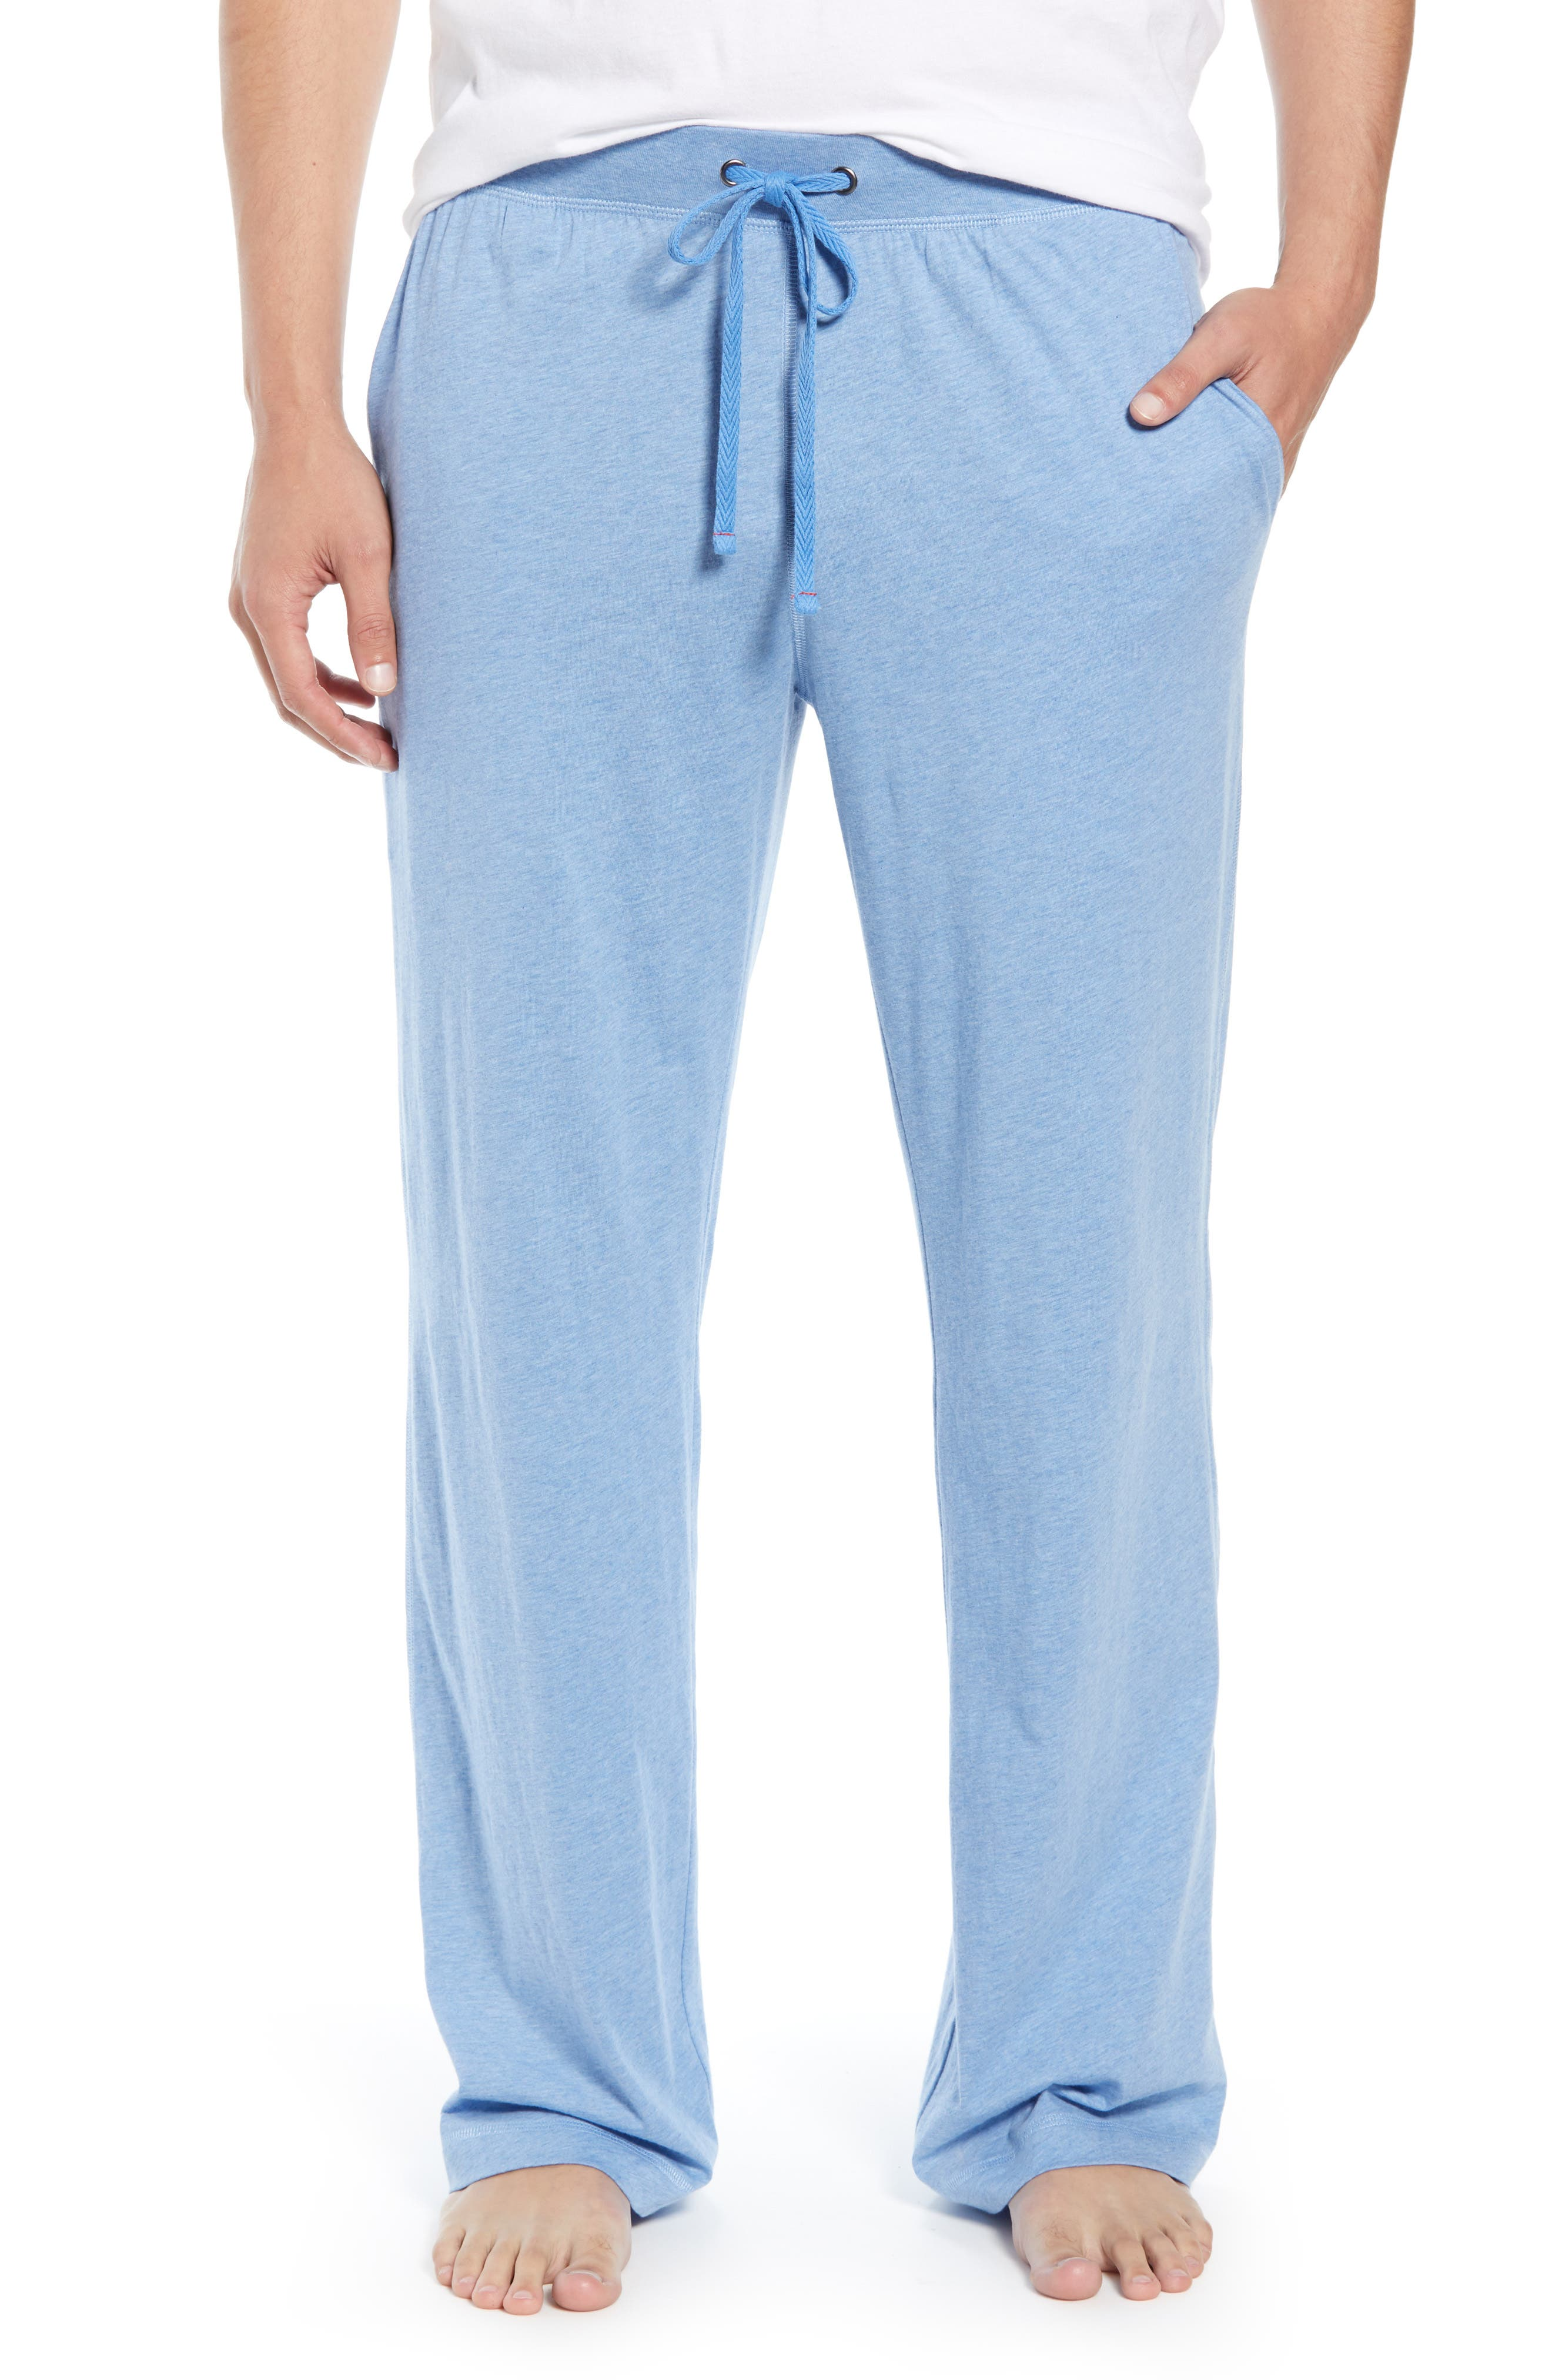 DANIEL BUCHLER, Peruvian Pima Lightweight Cotton Lounge Pants, Main thumbnail 1, color, BLUE HEATHER